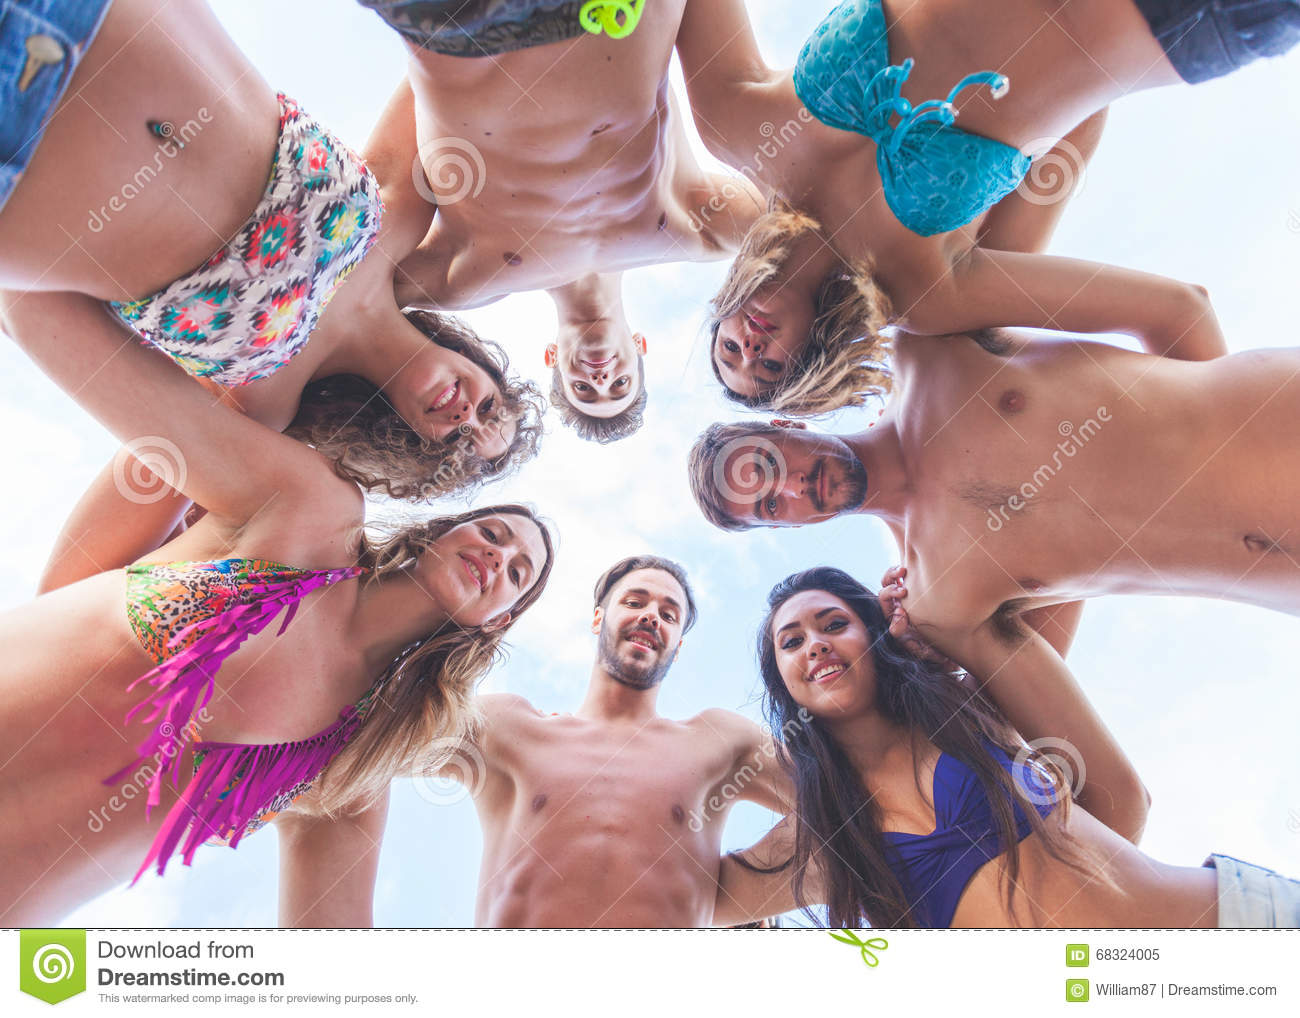 Multiracial group of friends embraced at seaside, bottom view.